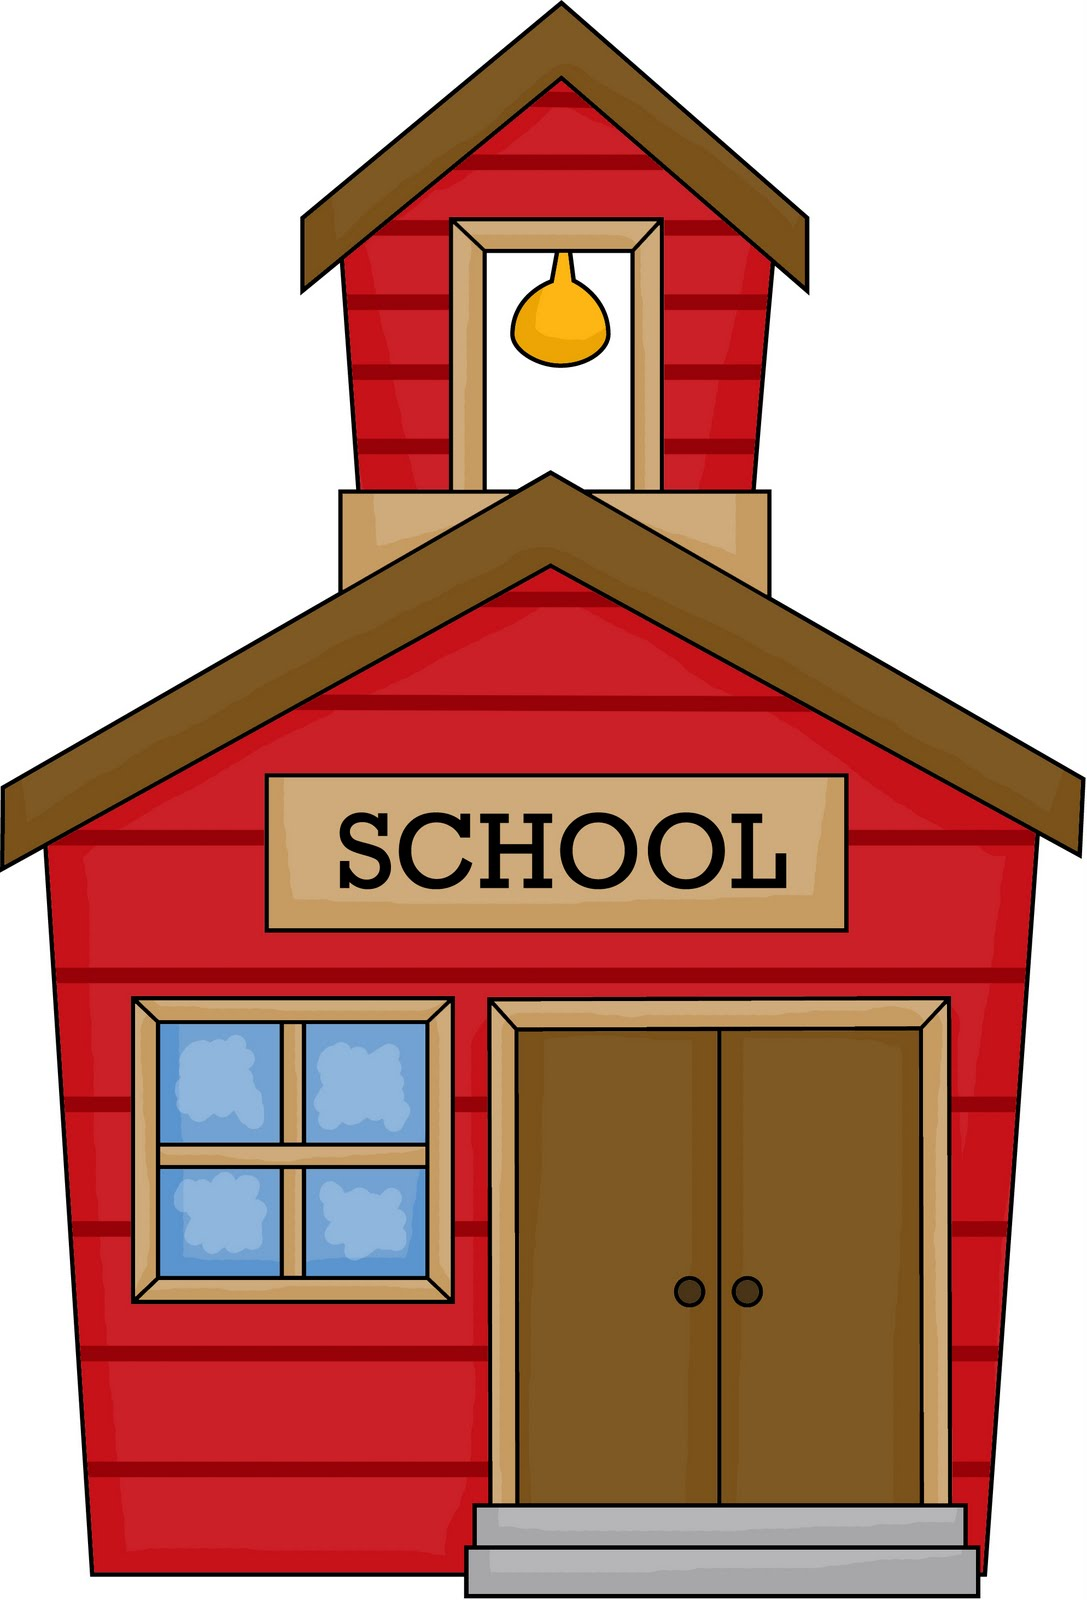 school house images-school house images-3